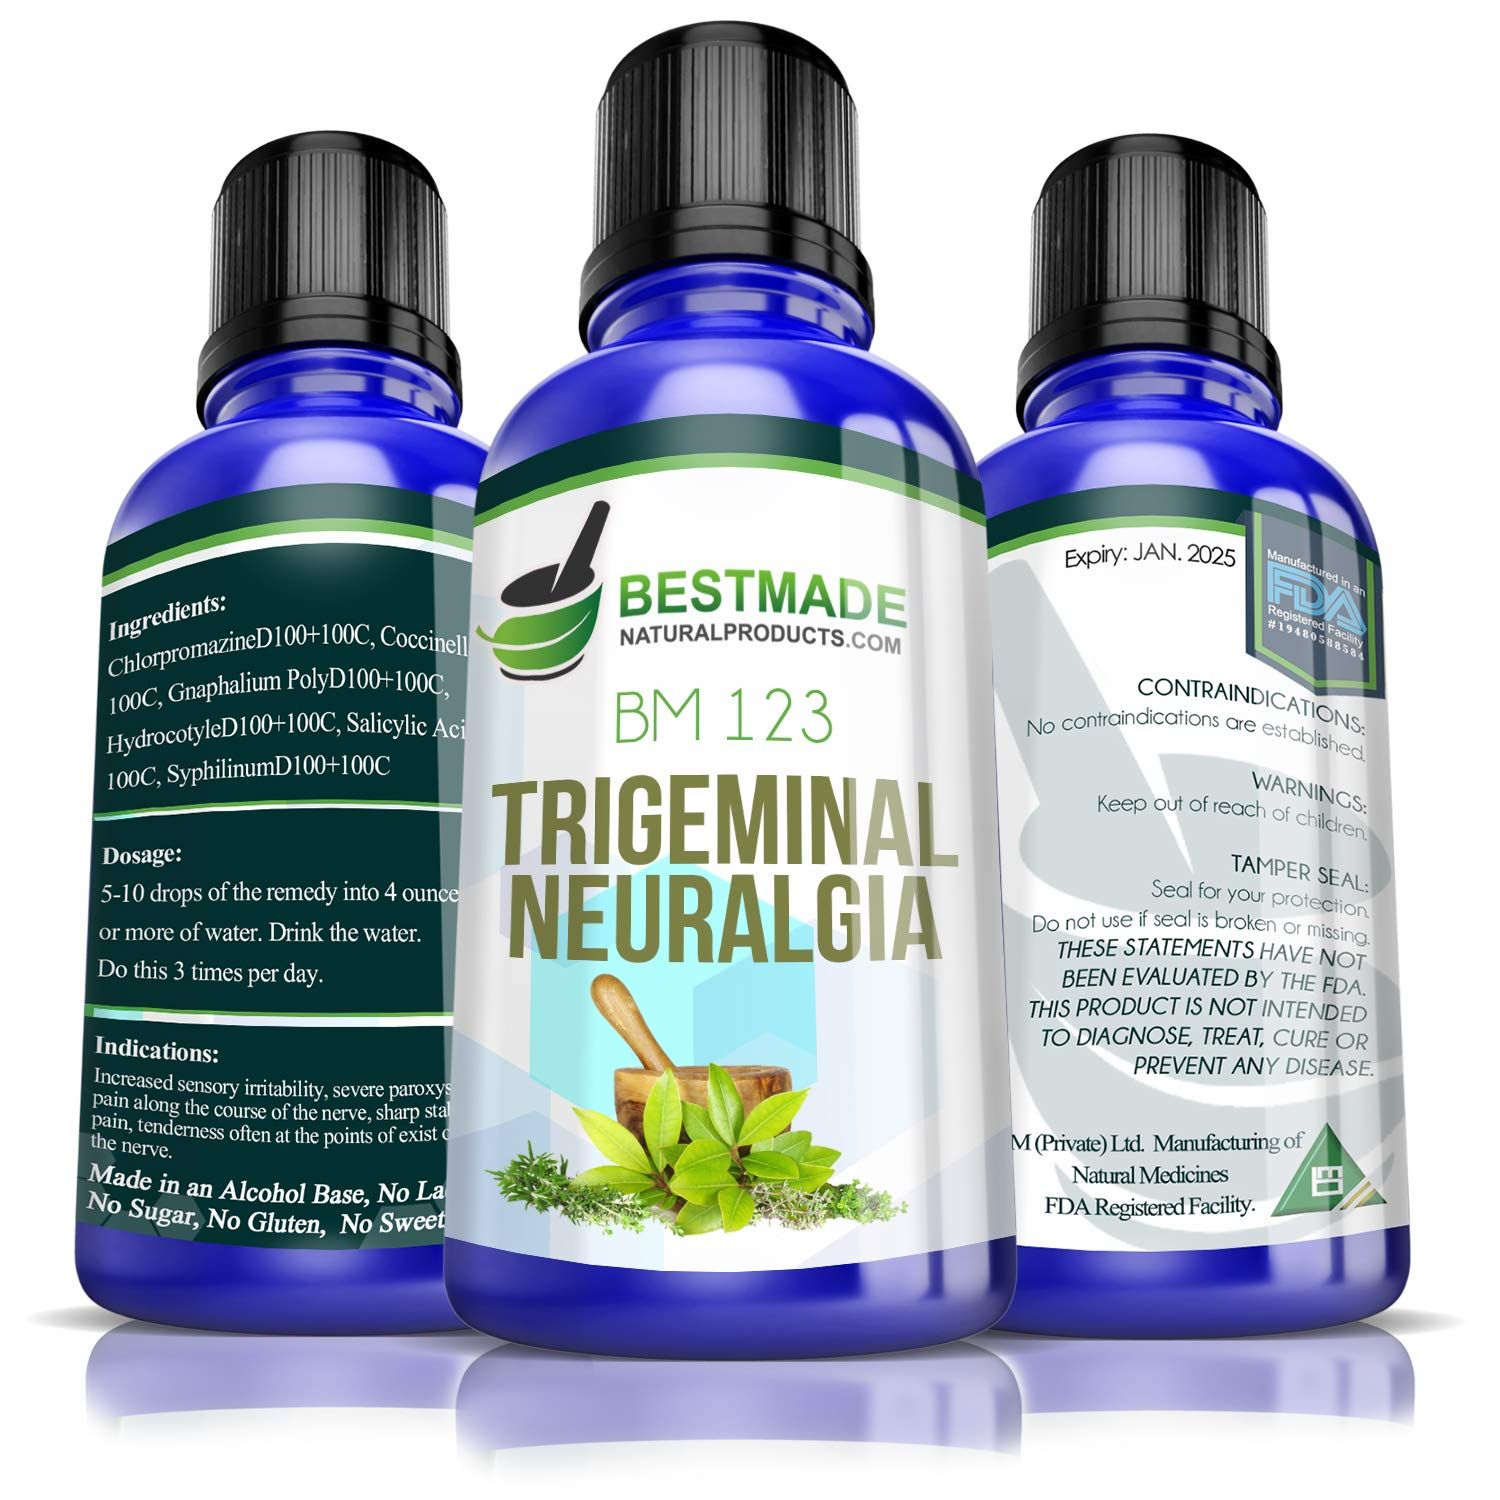 Trigeminal Neuralgia BM123, 30mL, A Natural Remedy for Tic Delarue Helps Control Episodes of Face or Jaw Nerve Pain, Does Not Cause Drug Interactions, No Side Effects, Provides Non Drowsy Relief by Bestmade Naturalproducts.com